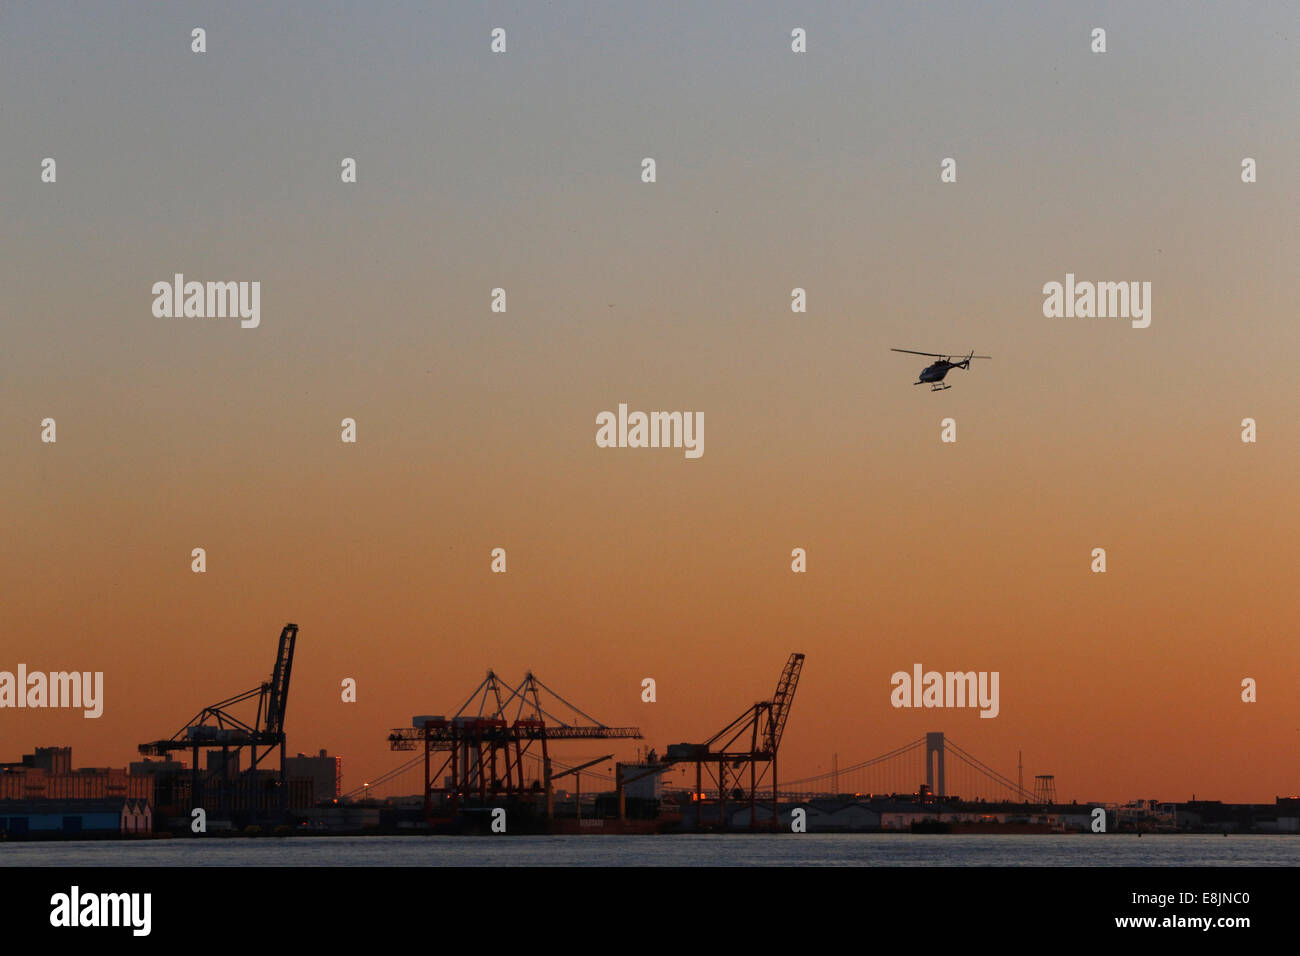 Helicopter and container cranes at sunset. - Stock Image